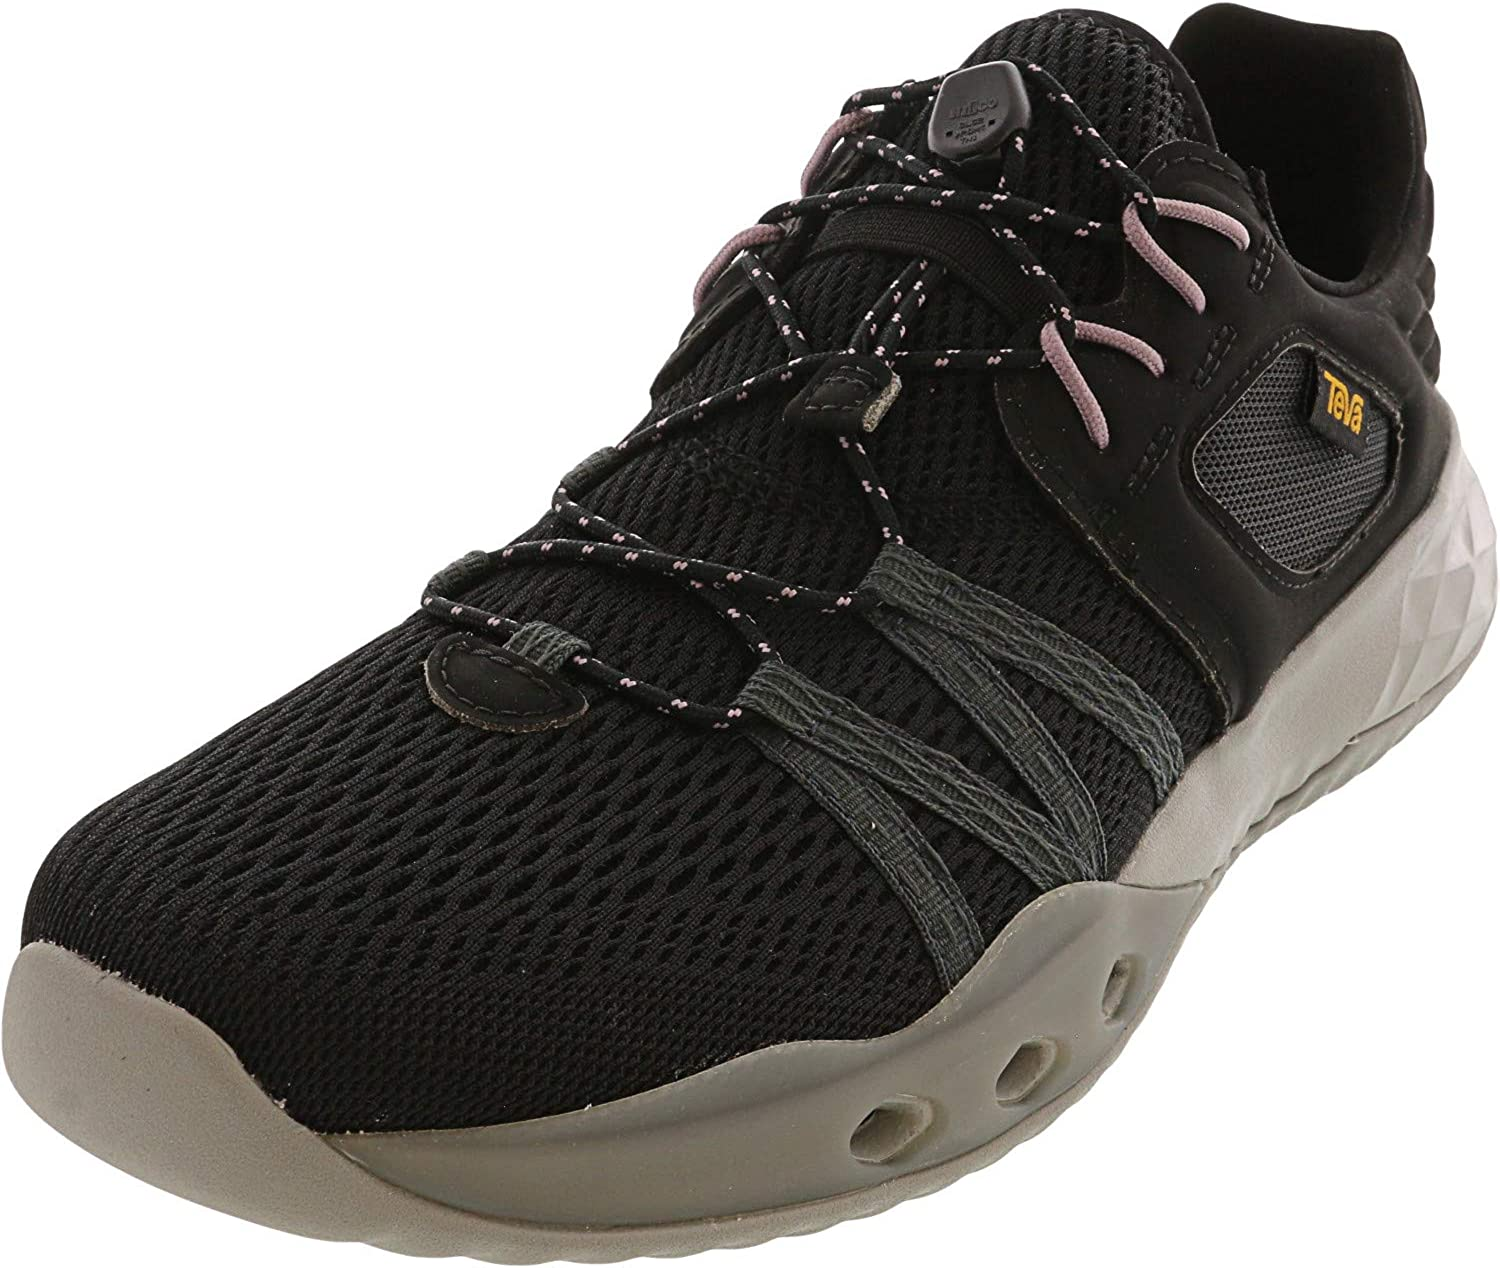 Teva Women's Terra-Float Churn Sneakers